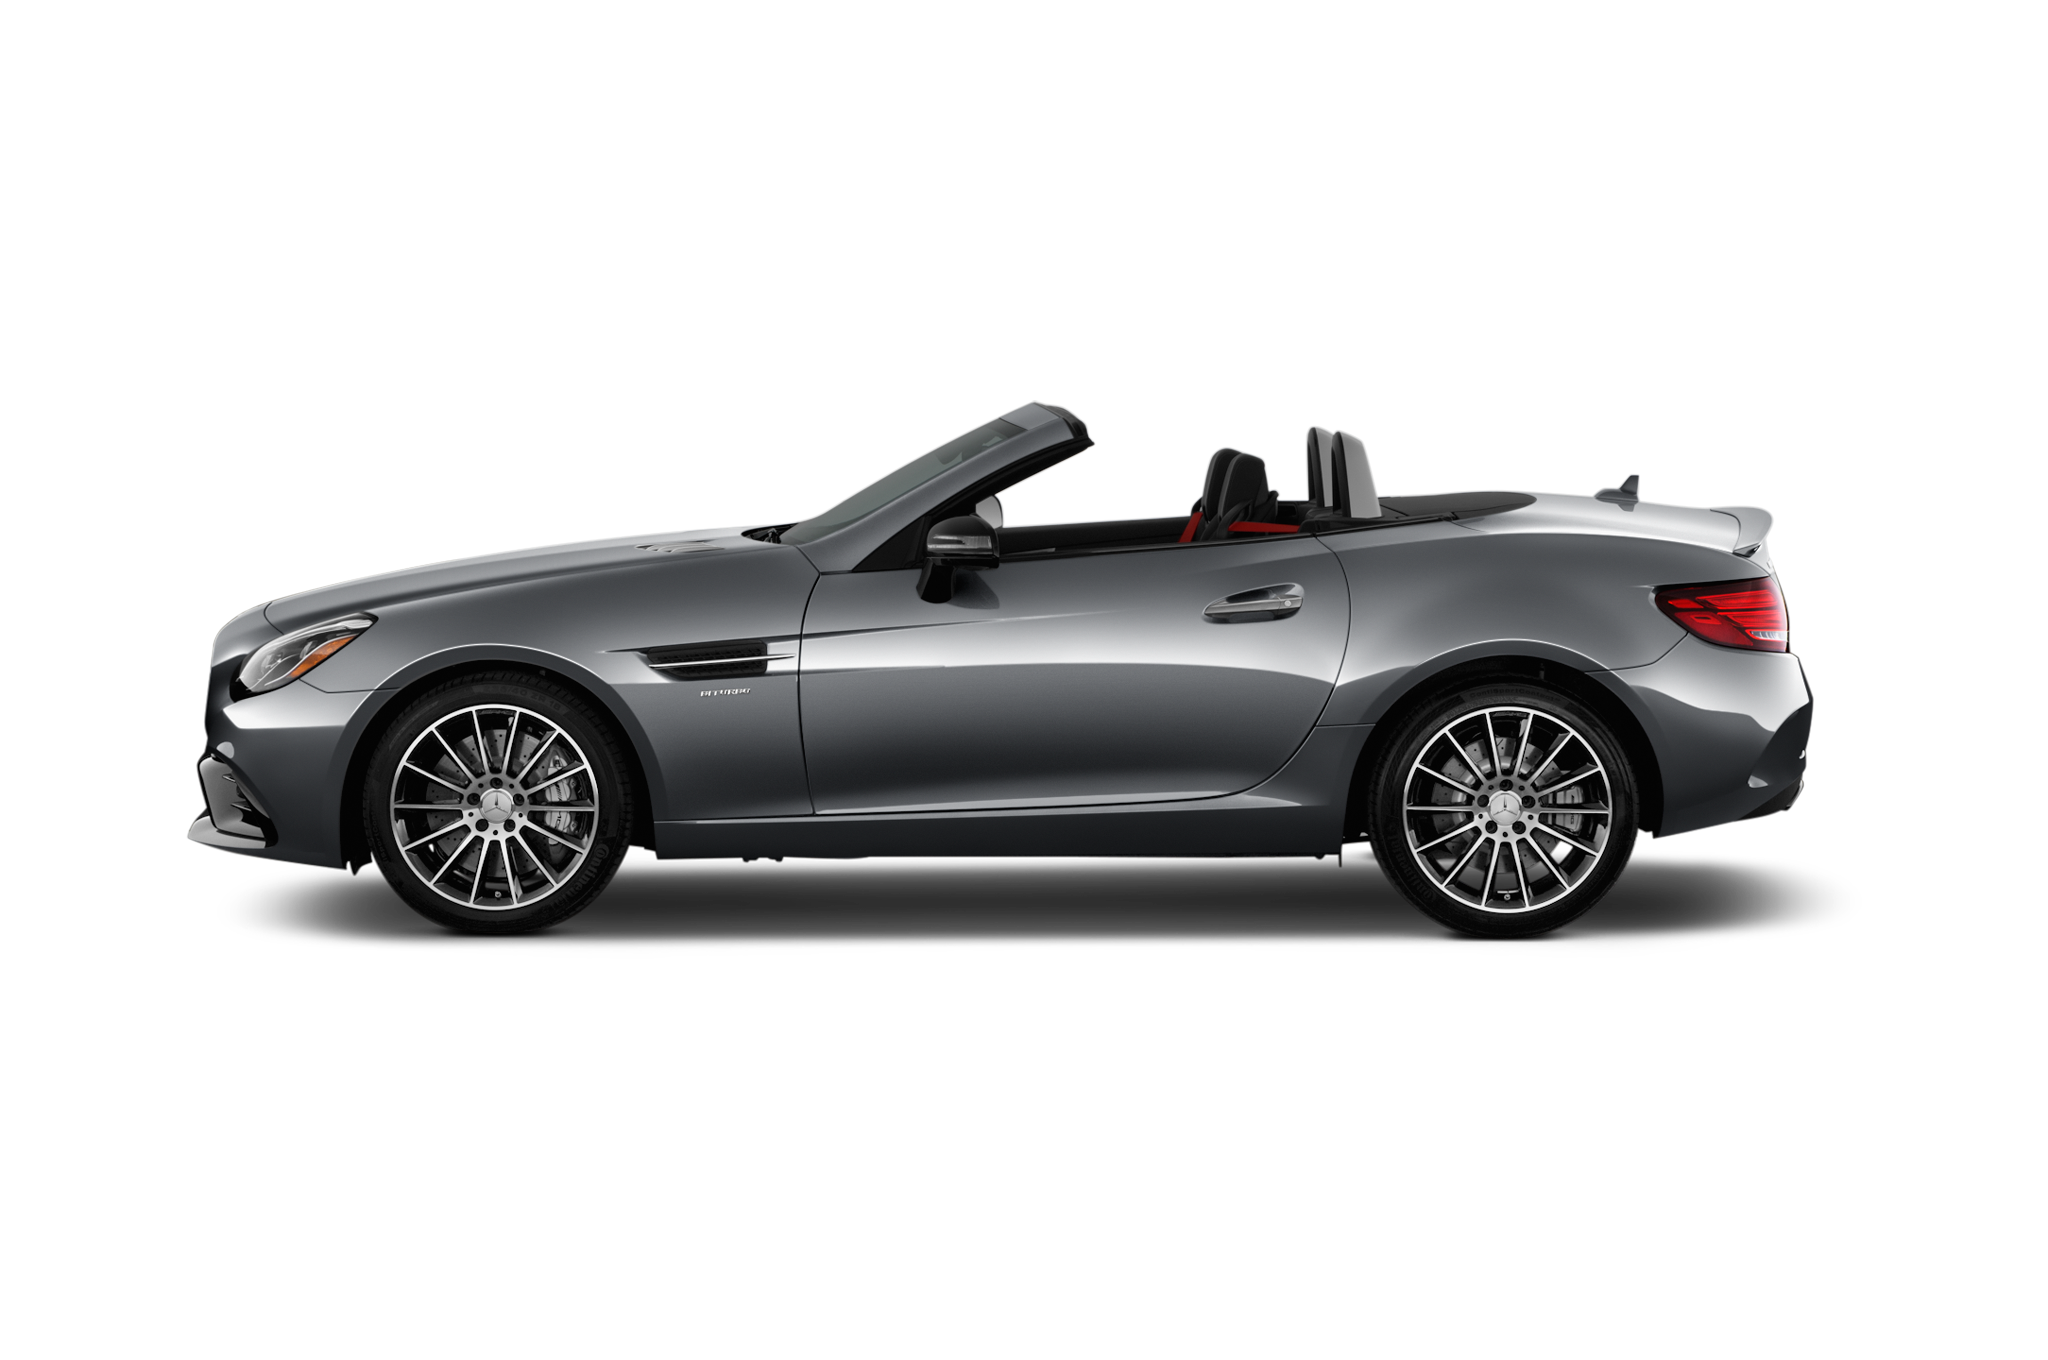 2017 mercedes benz slc class review for Convertible mercedes benz 2017